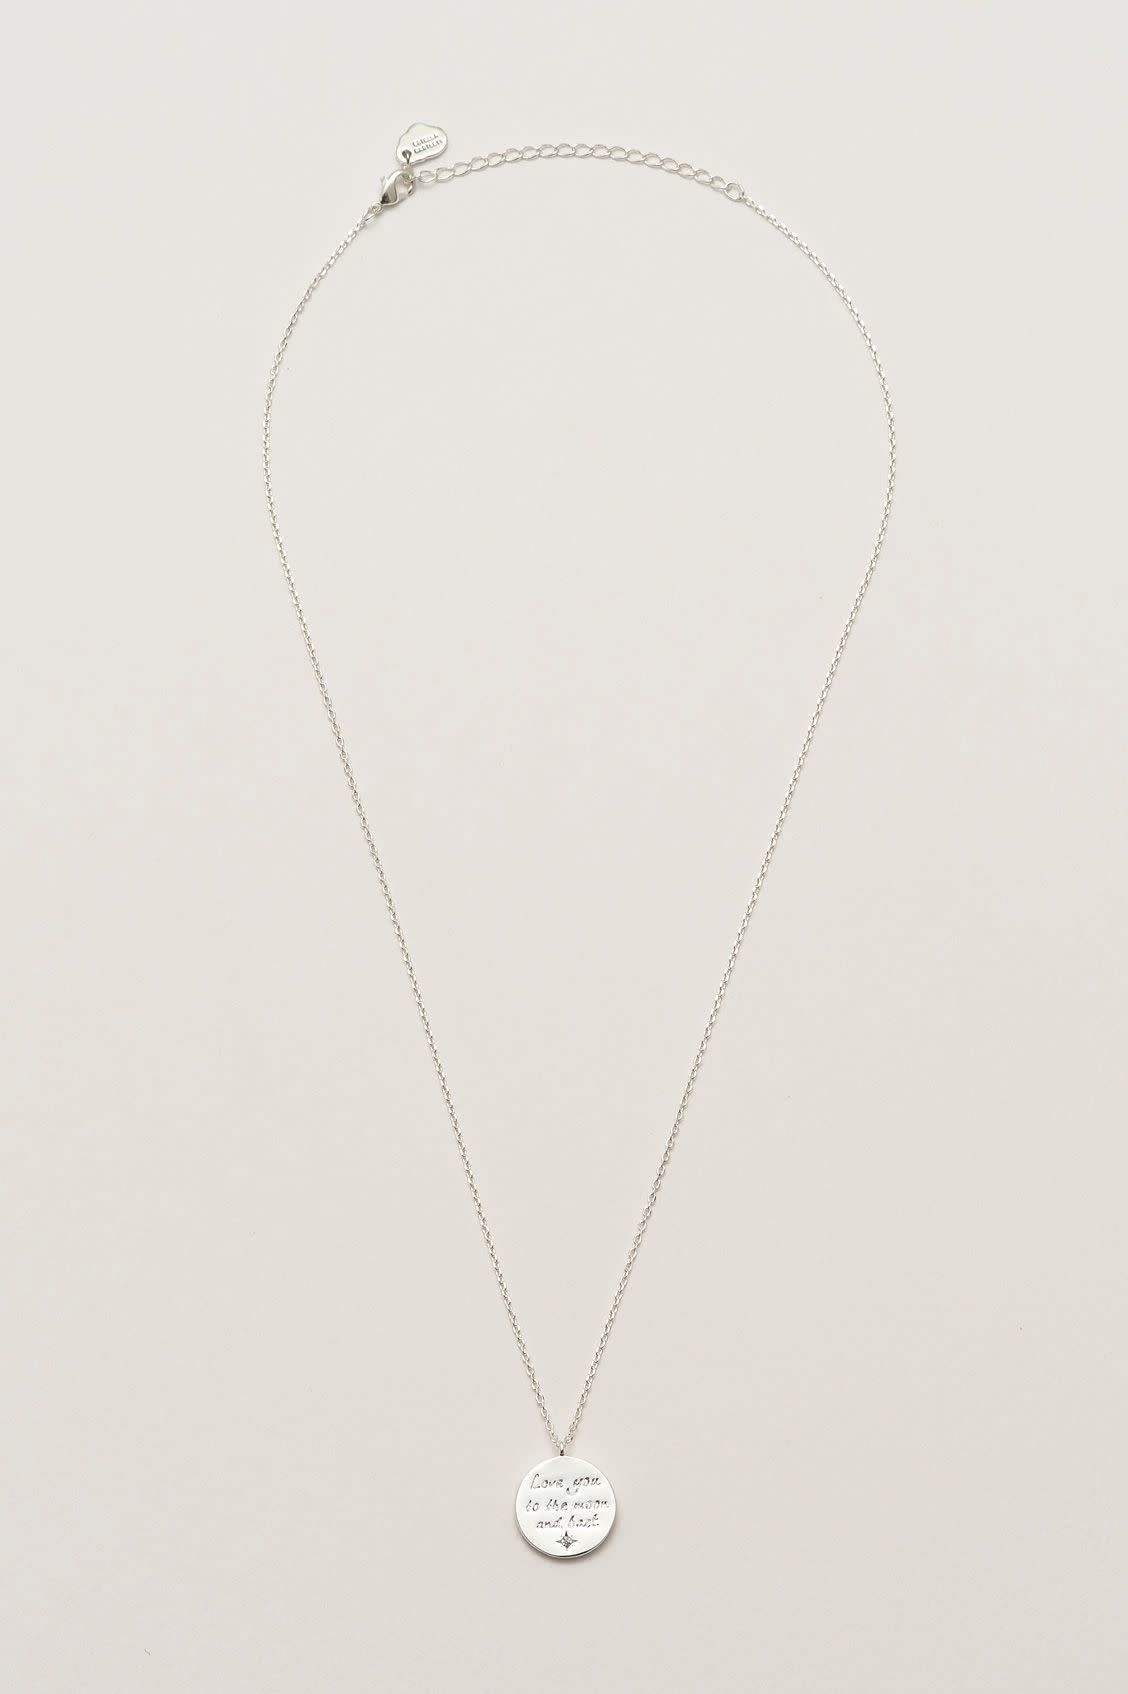 Estella Bartlett 'Love you to the moon and back' necklace - silver plated